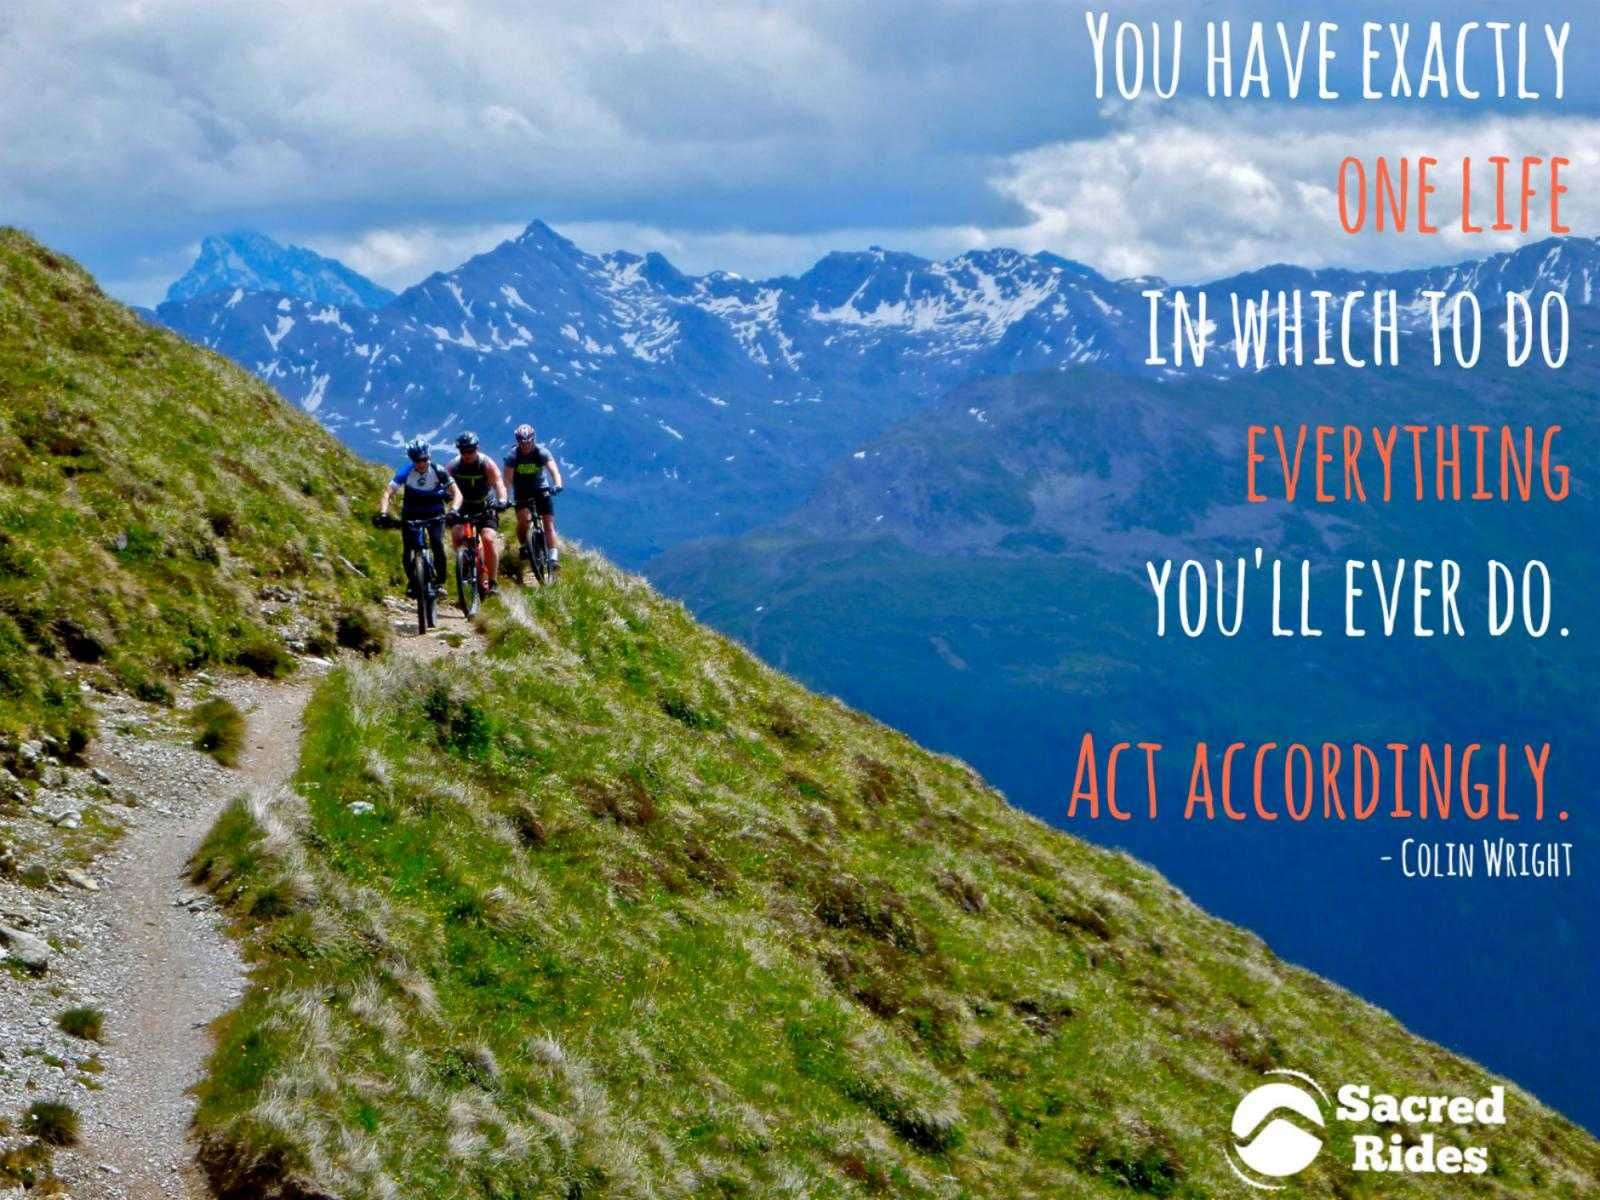 60 Best Adventure Quotes And Sayings: UPDATED: 34 Adventure Quotes To Inspire Your Next MTB